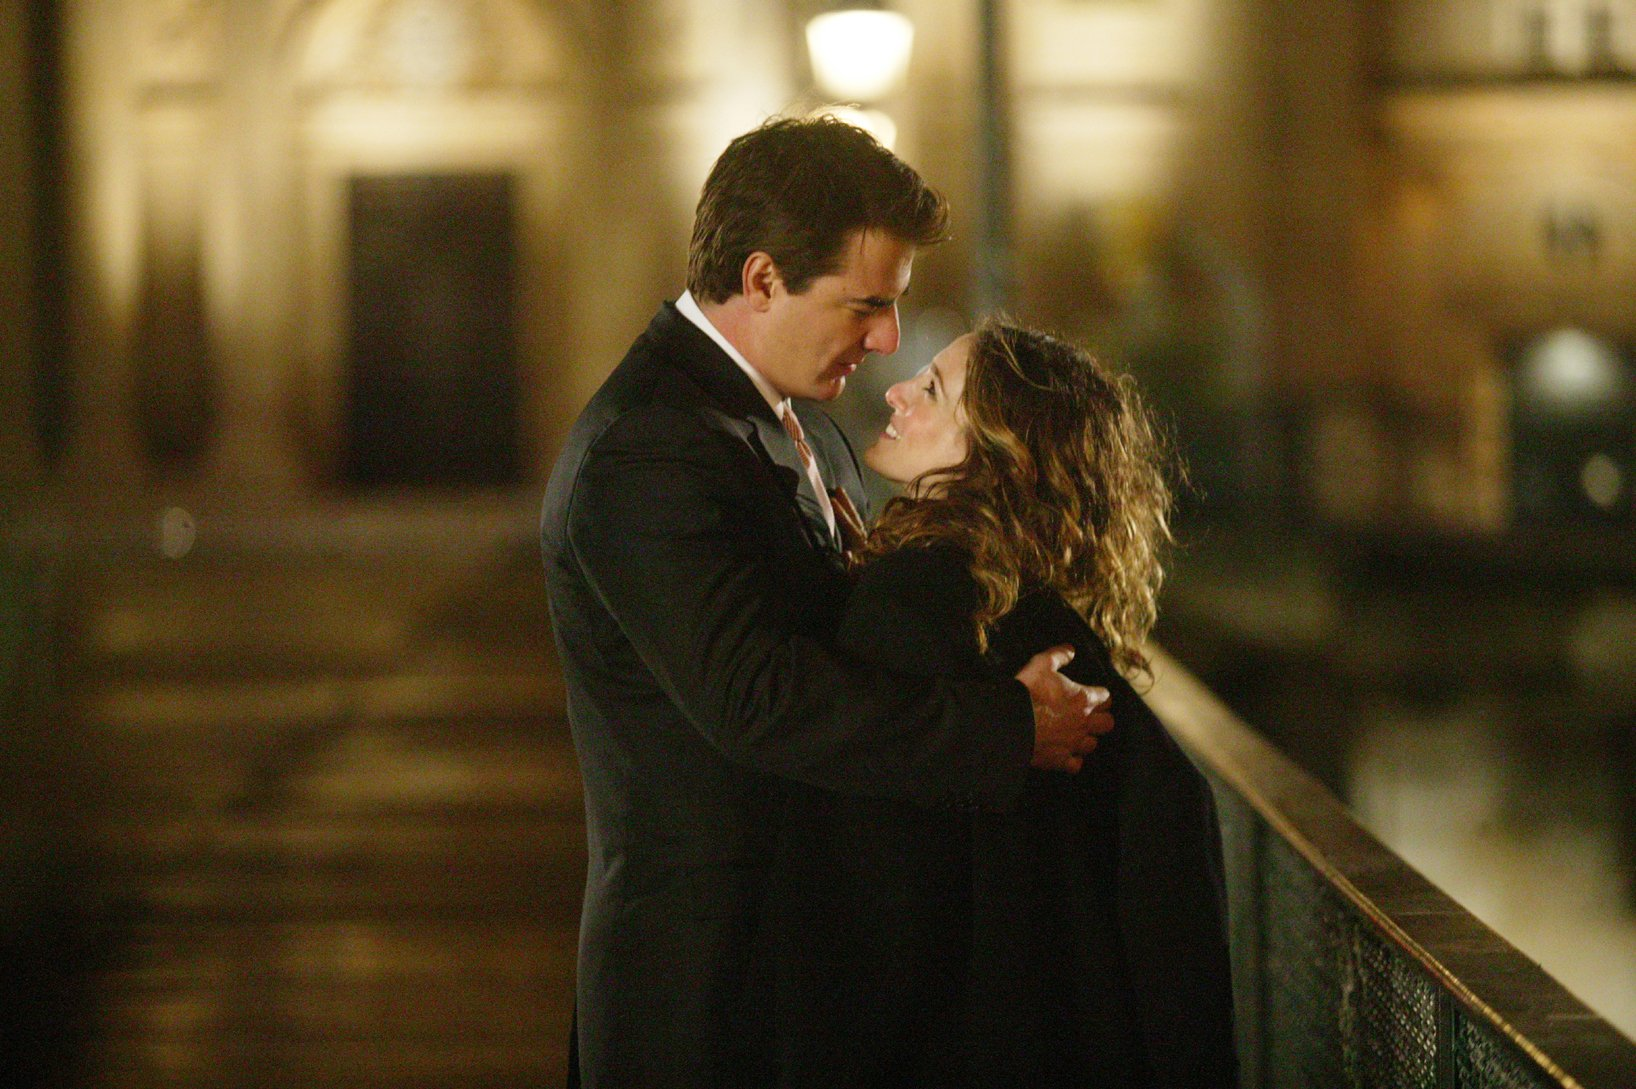 """Television programme SEX AND THE CITY: An American Girl in Paris Sex And The City Episode 19 Part 2 """"An American Girl in Paris (Part Deux)"""" Carrie (Sarah Jessica Parker) and Mr. Big (Chris Noth) Tx:17/03/2004 This picture may be used solely for Channel 4 programme publicity purposes in connection with the current broadcast of the programme(s) featured in the national and local press and listings. Not to be reproduced or redistributed for any use or in any medium not set out above (including the internet or other electronic form) without the prior written consent of Channel 4 Picture Publicity 020 7306 8685...London...United Kingdom CHANNEL 4 PICTURE PUBLICITY 124 Horseferry Road London SW1P 2TX 020 7306 8685"""